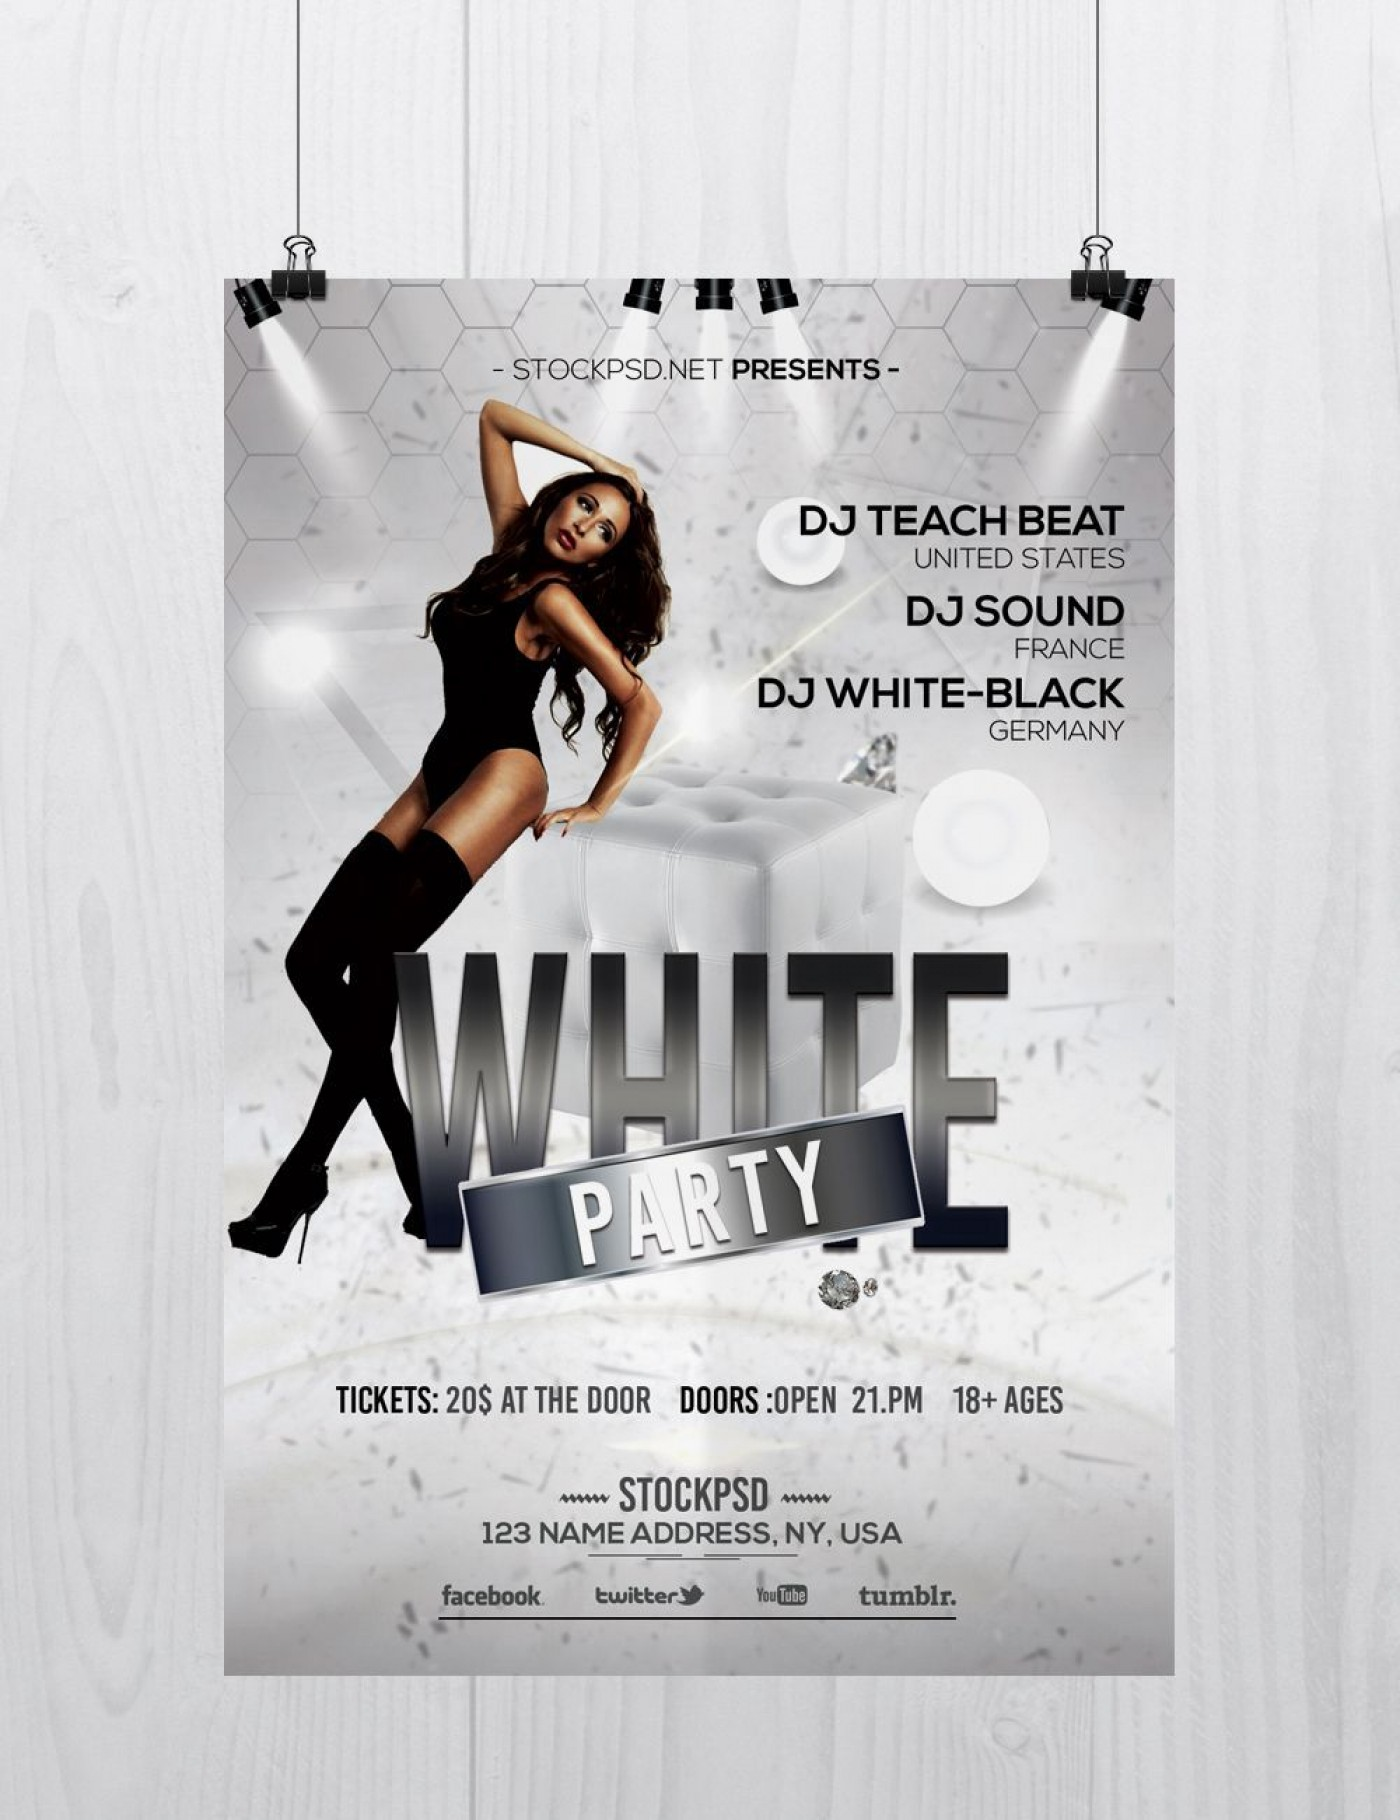 003 Unforgettable Free Party Flyer Template For Photoshop Photo  Pool Psd Download1400